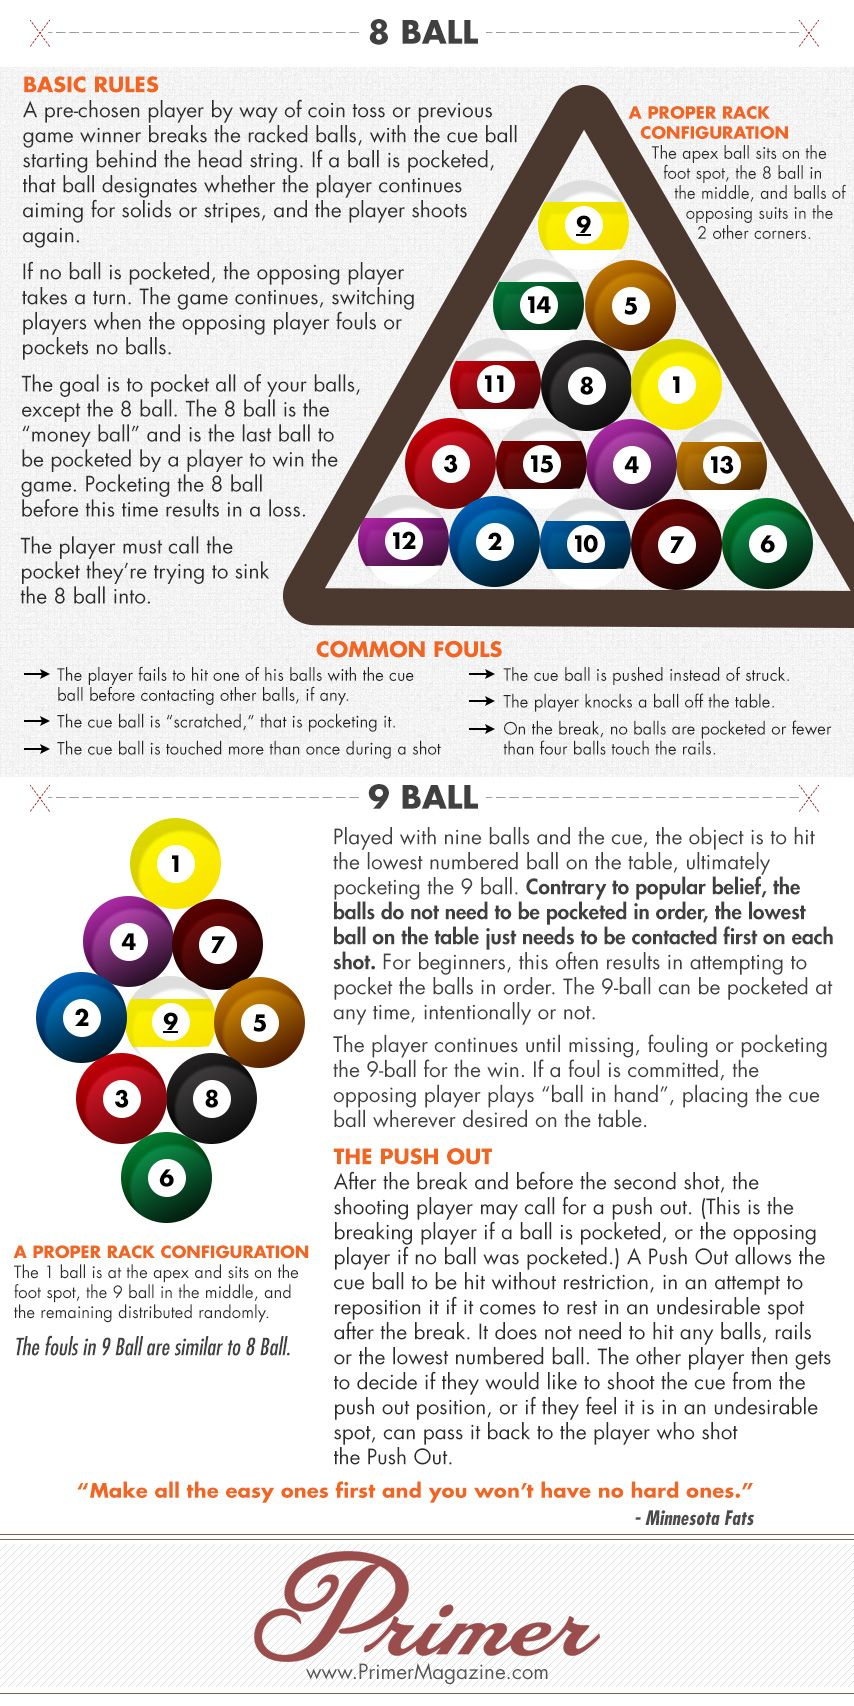 How To Play Pool And Look Like You Know What You Re Doing An Animated Visual Guide Primer Pool Balls Play Pool Pool Table Games